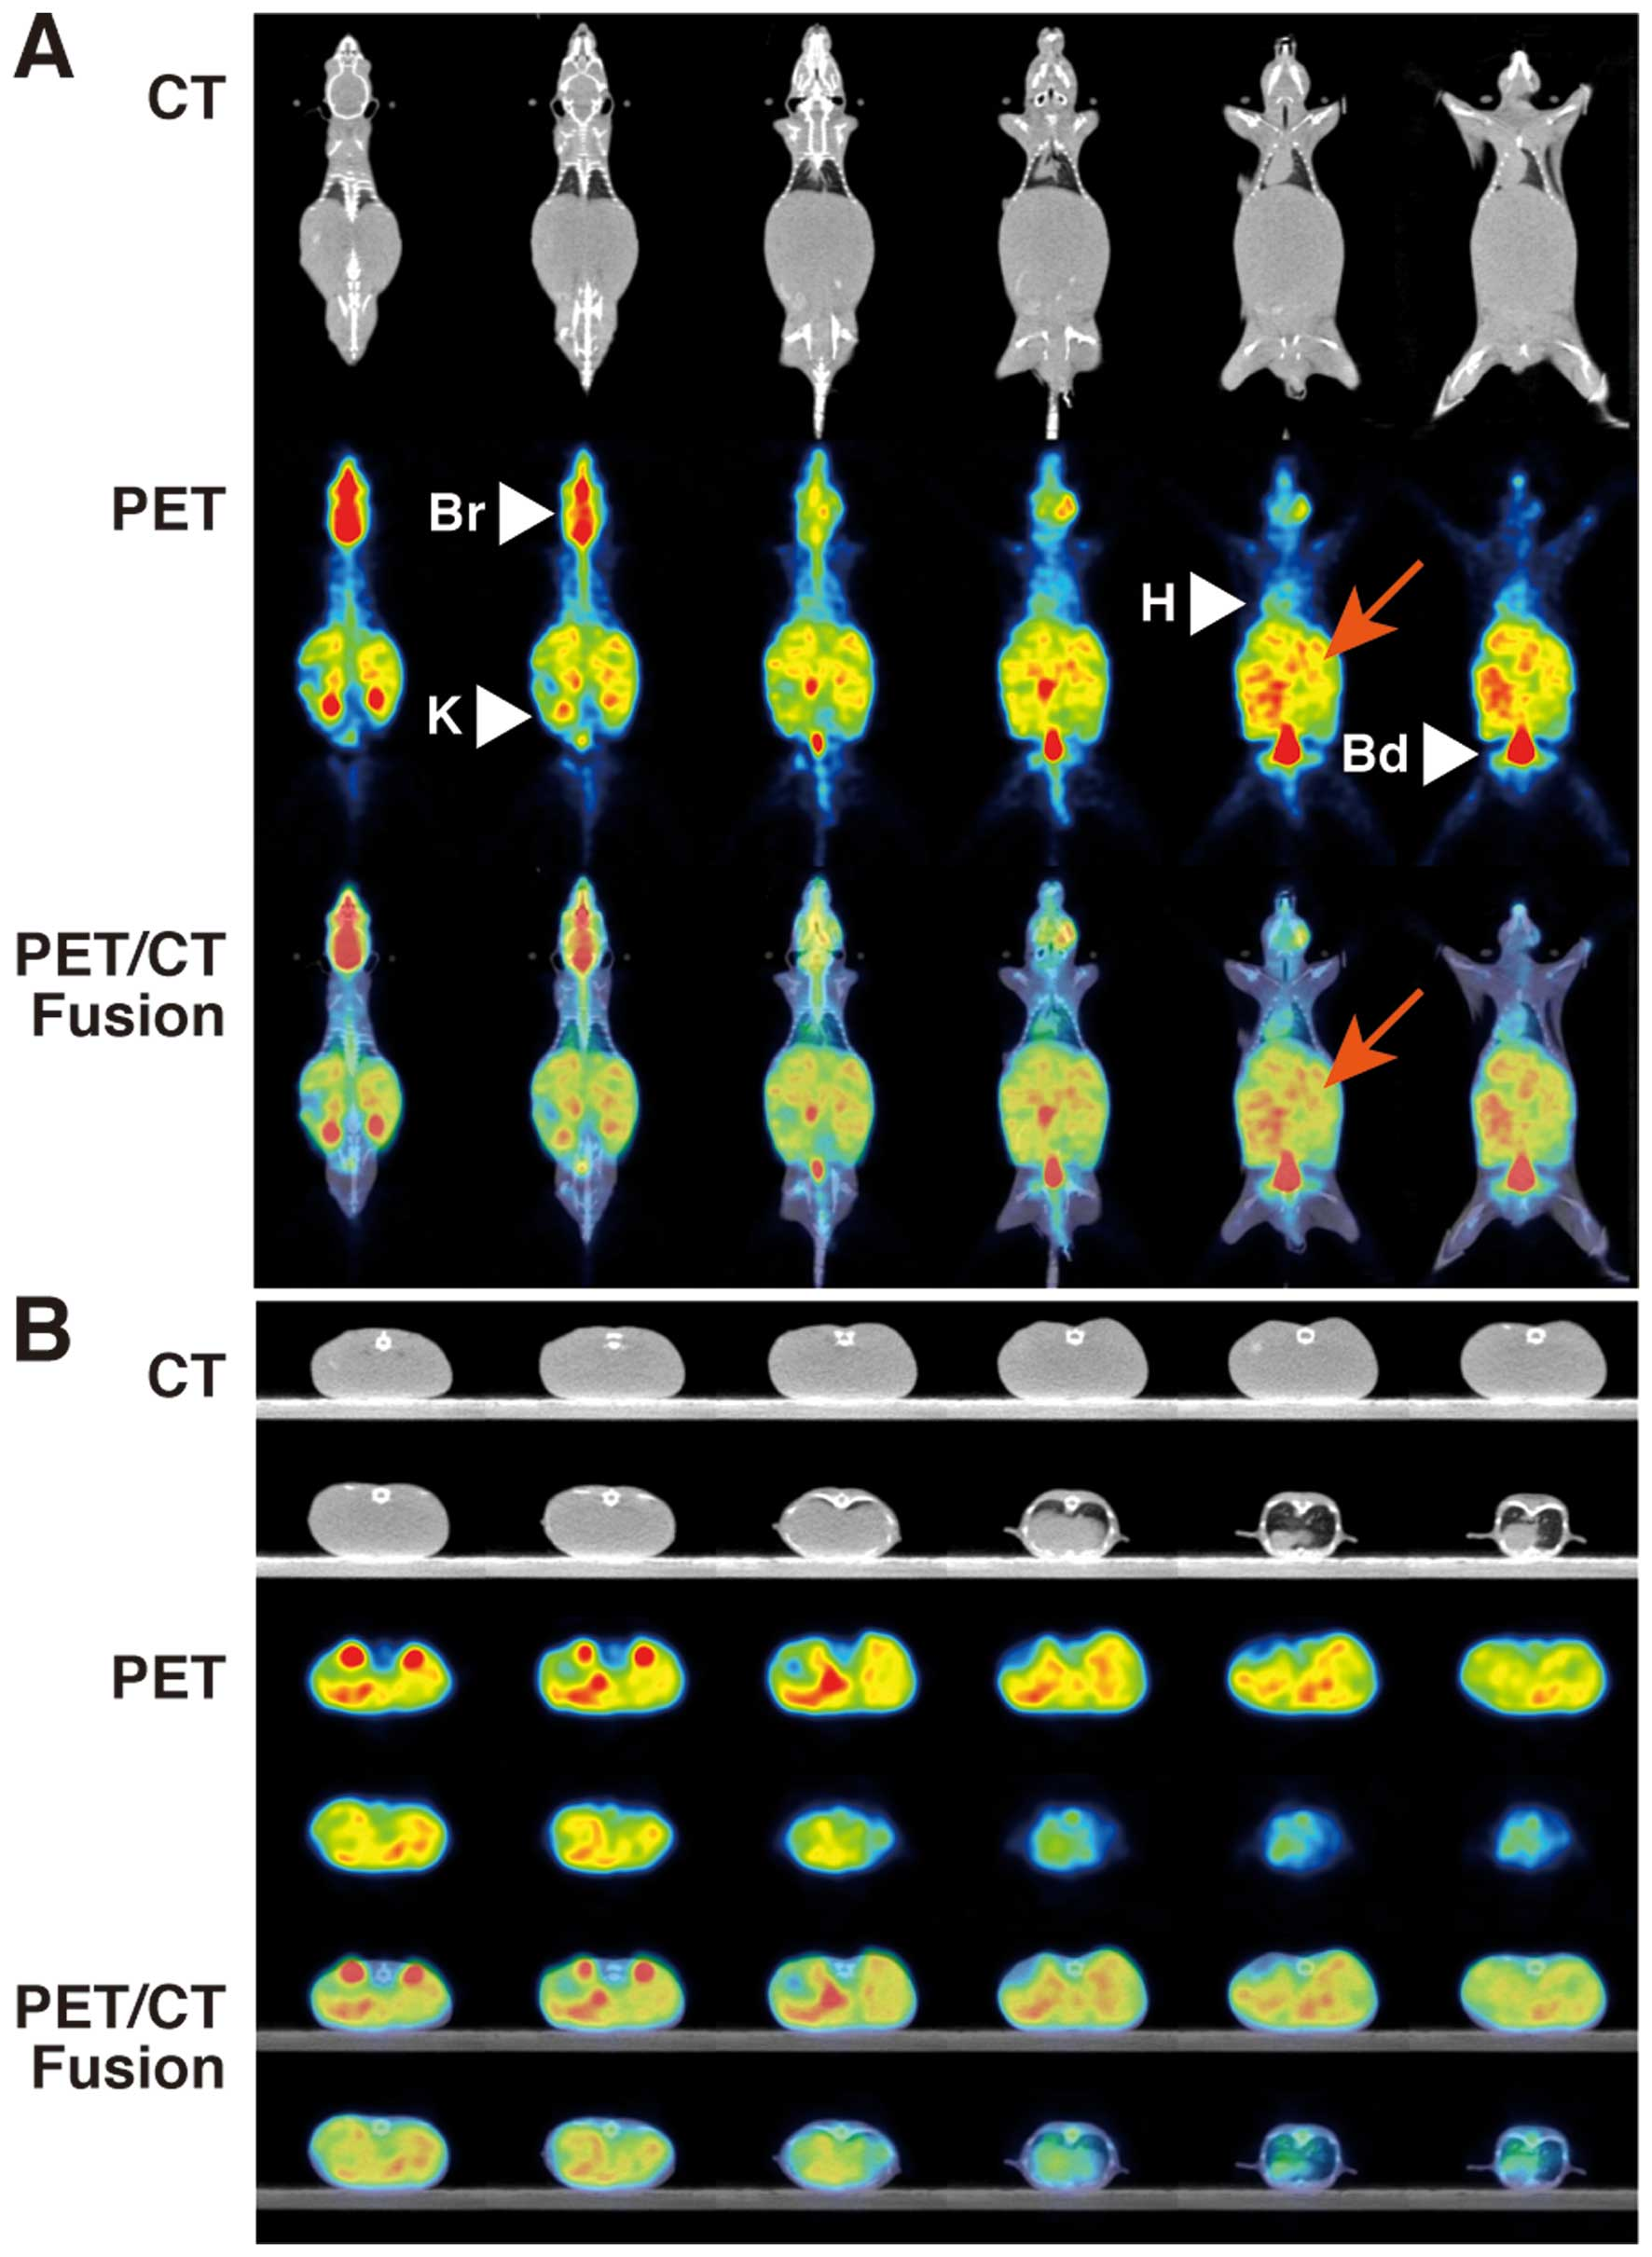 A New In Vivo Model To Analyze Hepatic Metastasis Of The Human Colon Cancer Cell Line Hct116 In Nod Shi Scid Il 2rgnull Nog Mice By 18f Fdg Pet Ct